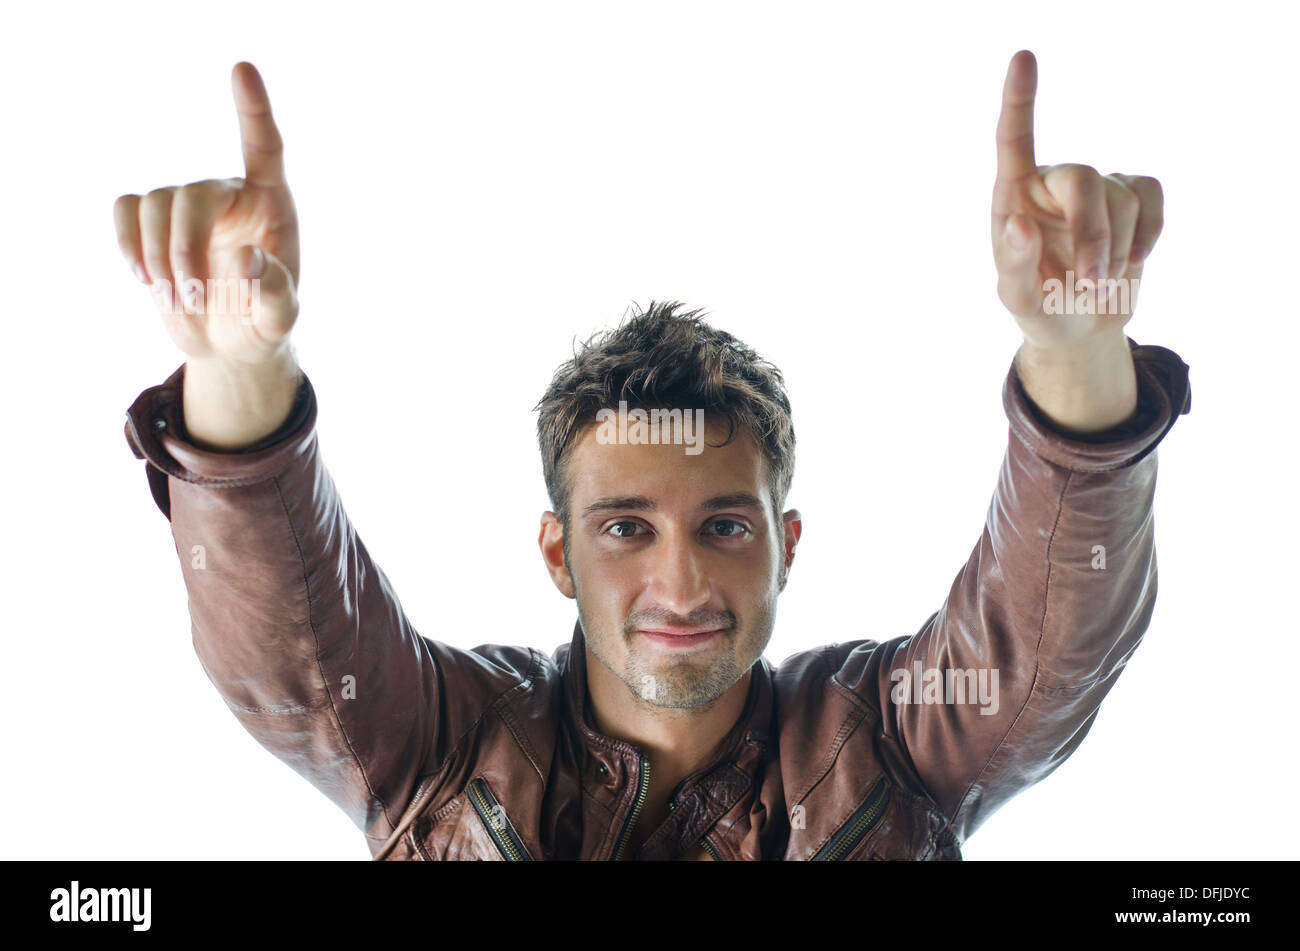 Smiling and confident young man pointing fingers up and looking in camera, isolated on white - Stock Image